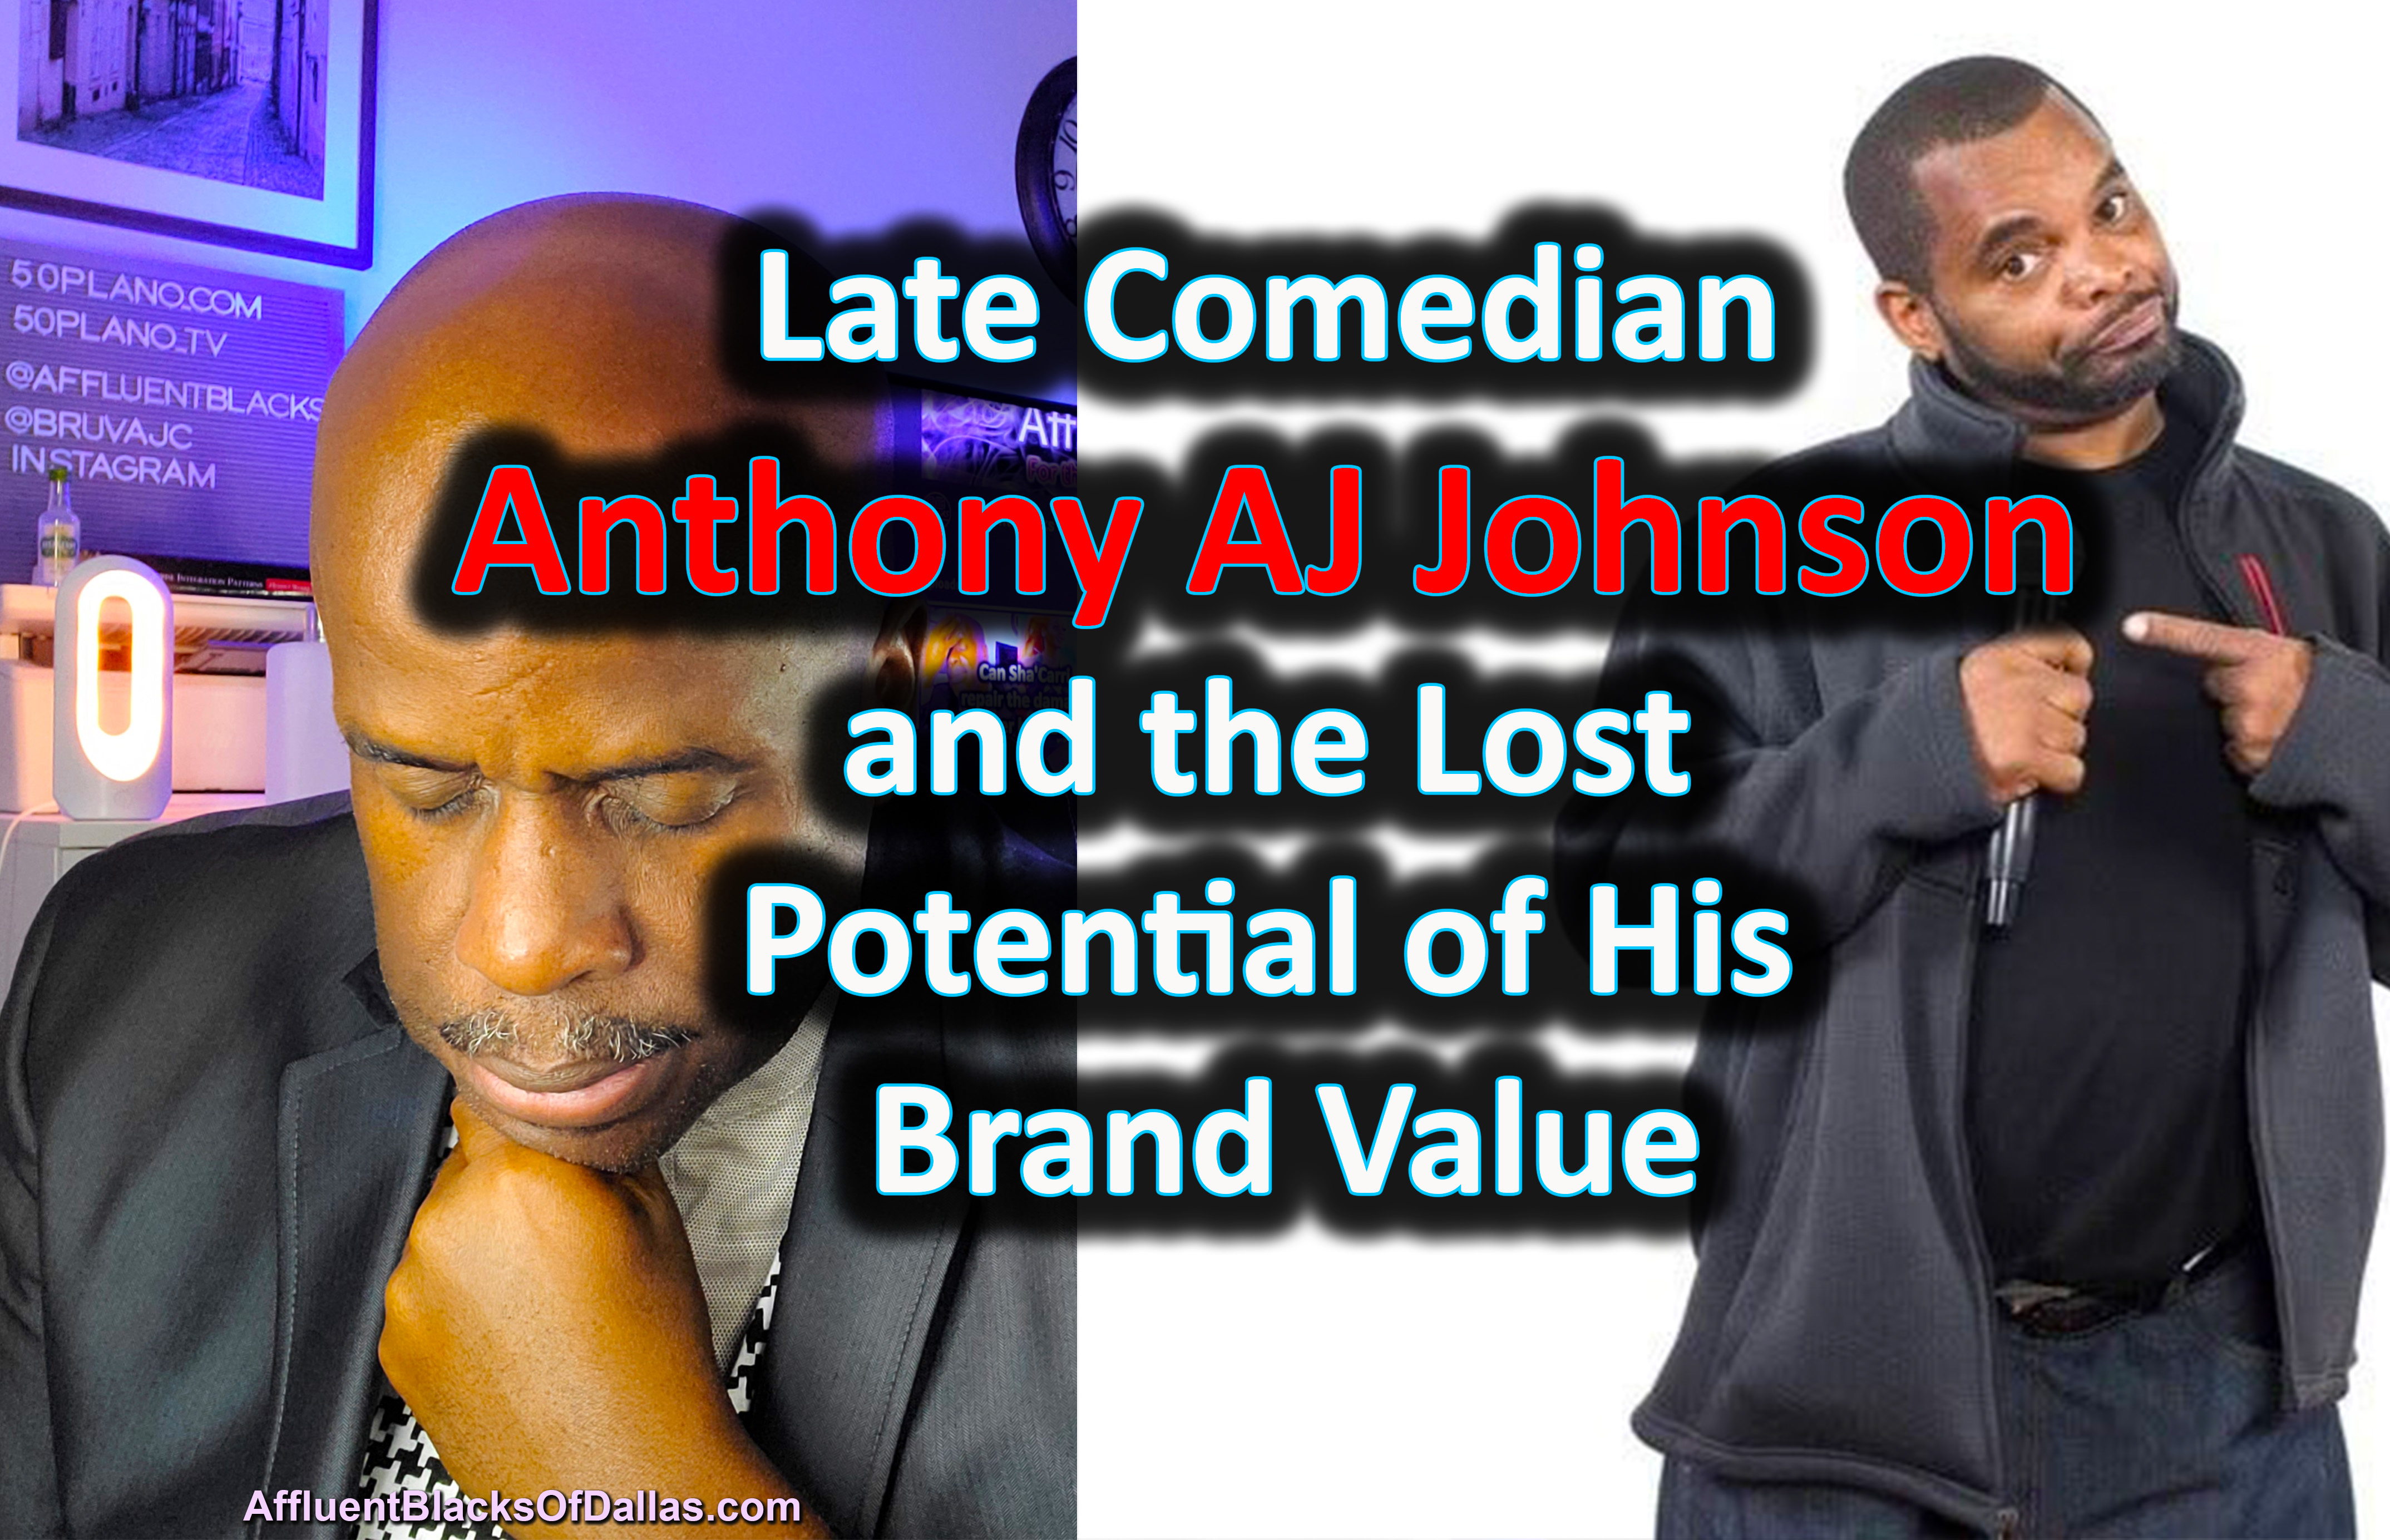 The Late Comedian AJ Johnson and the Lost Potential of His Brand Value